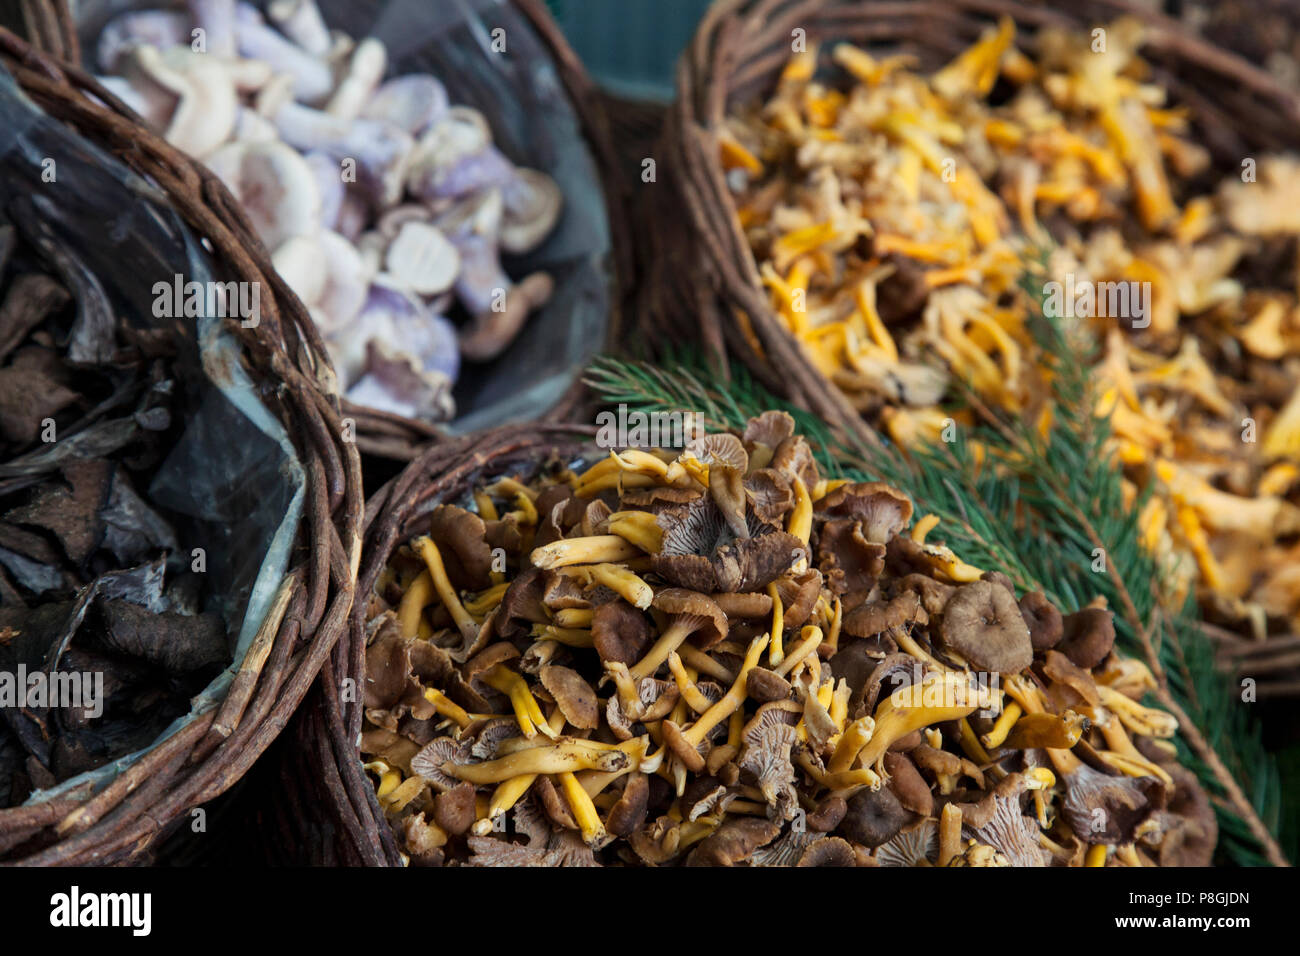 Mixed Mushrooms in wicker baskets on market stall - Stock Image